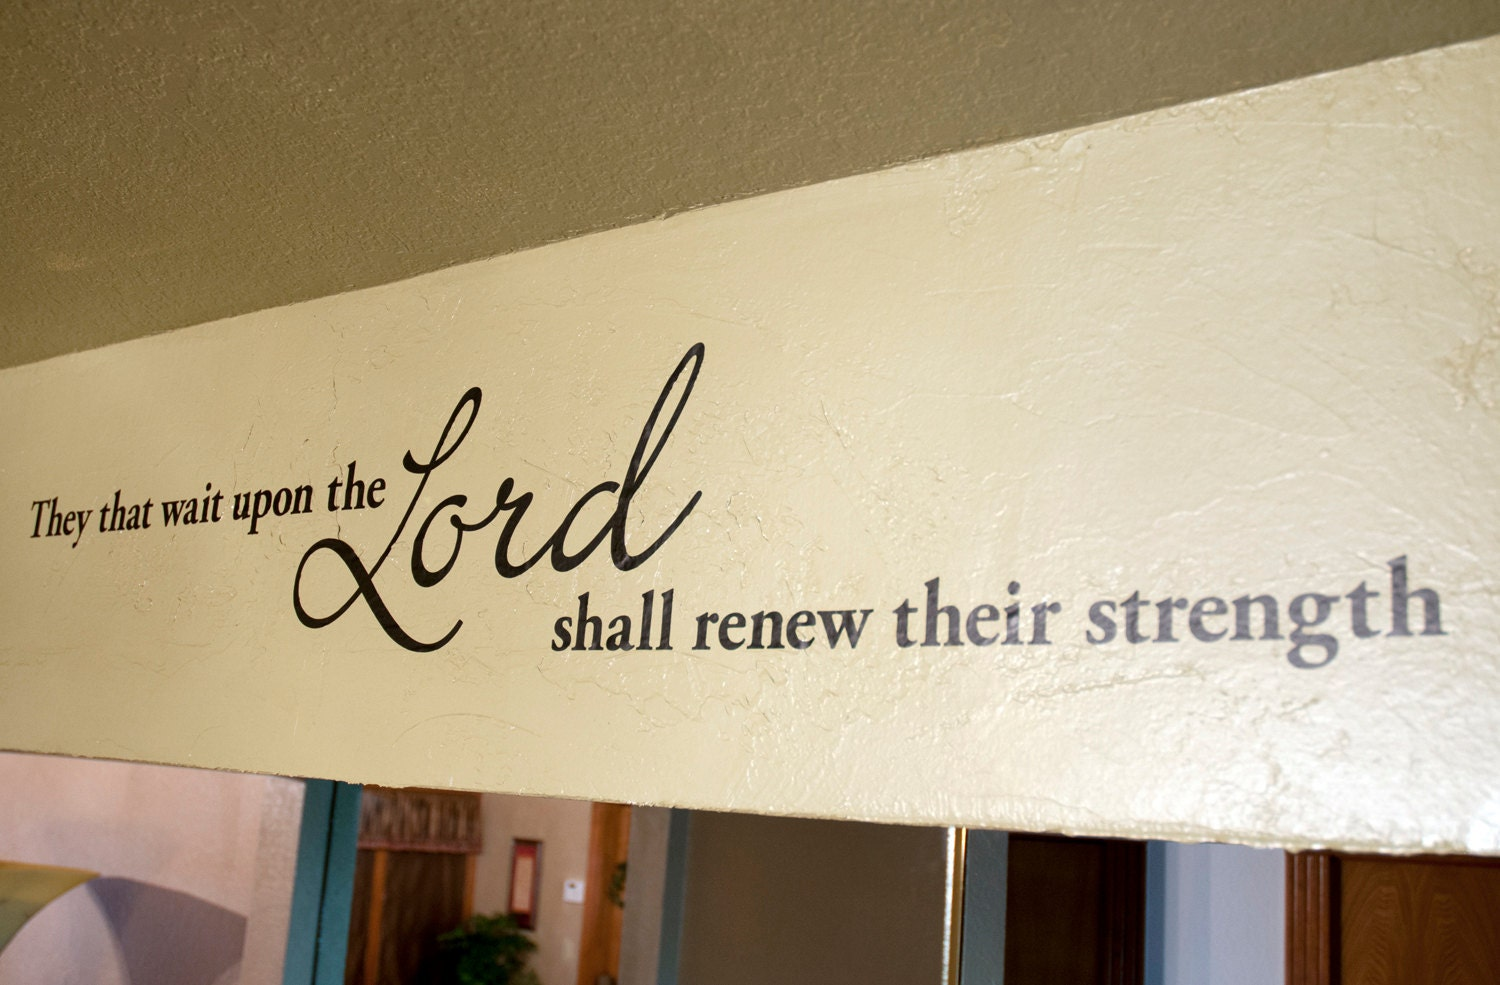 They that wait upon the Lord Bible Verse Wall Decal